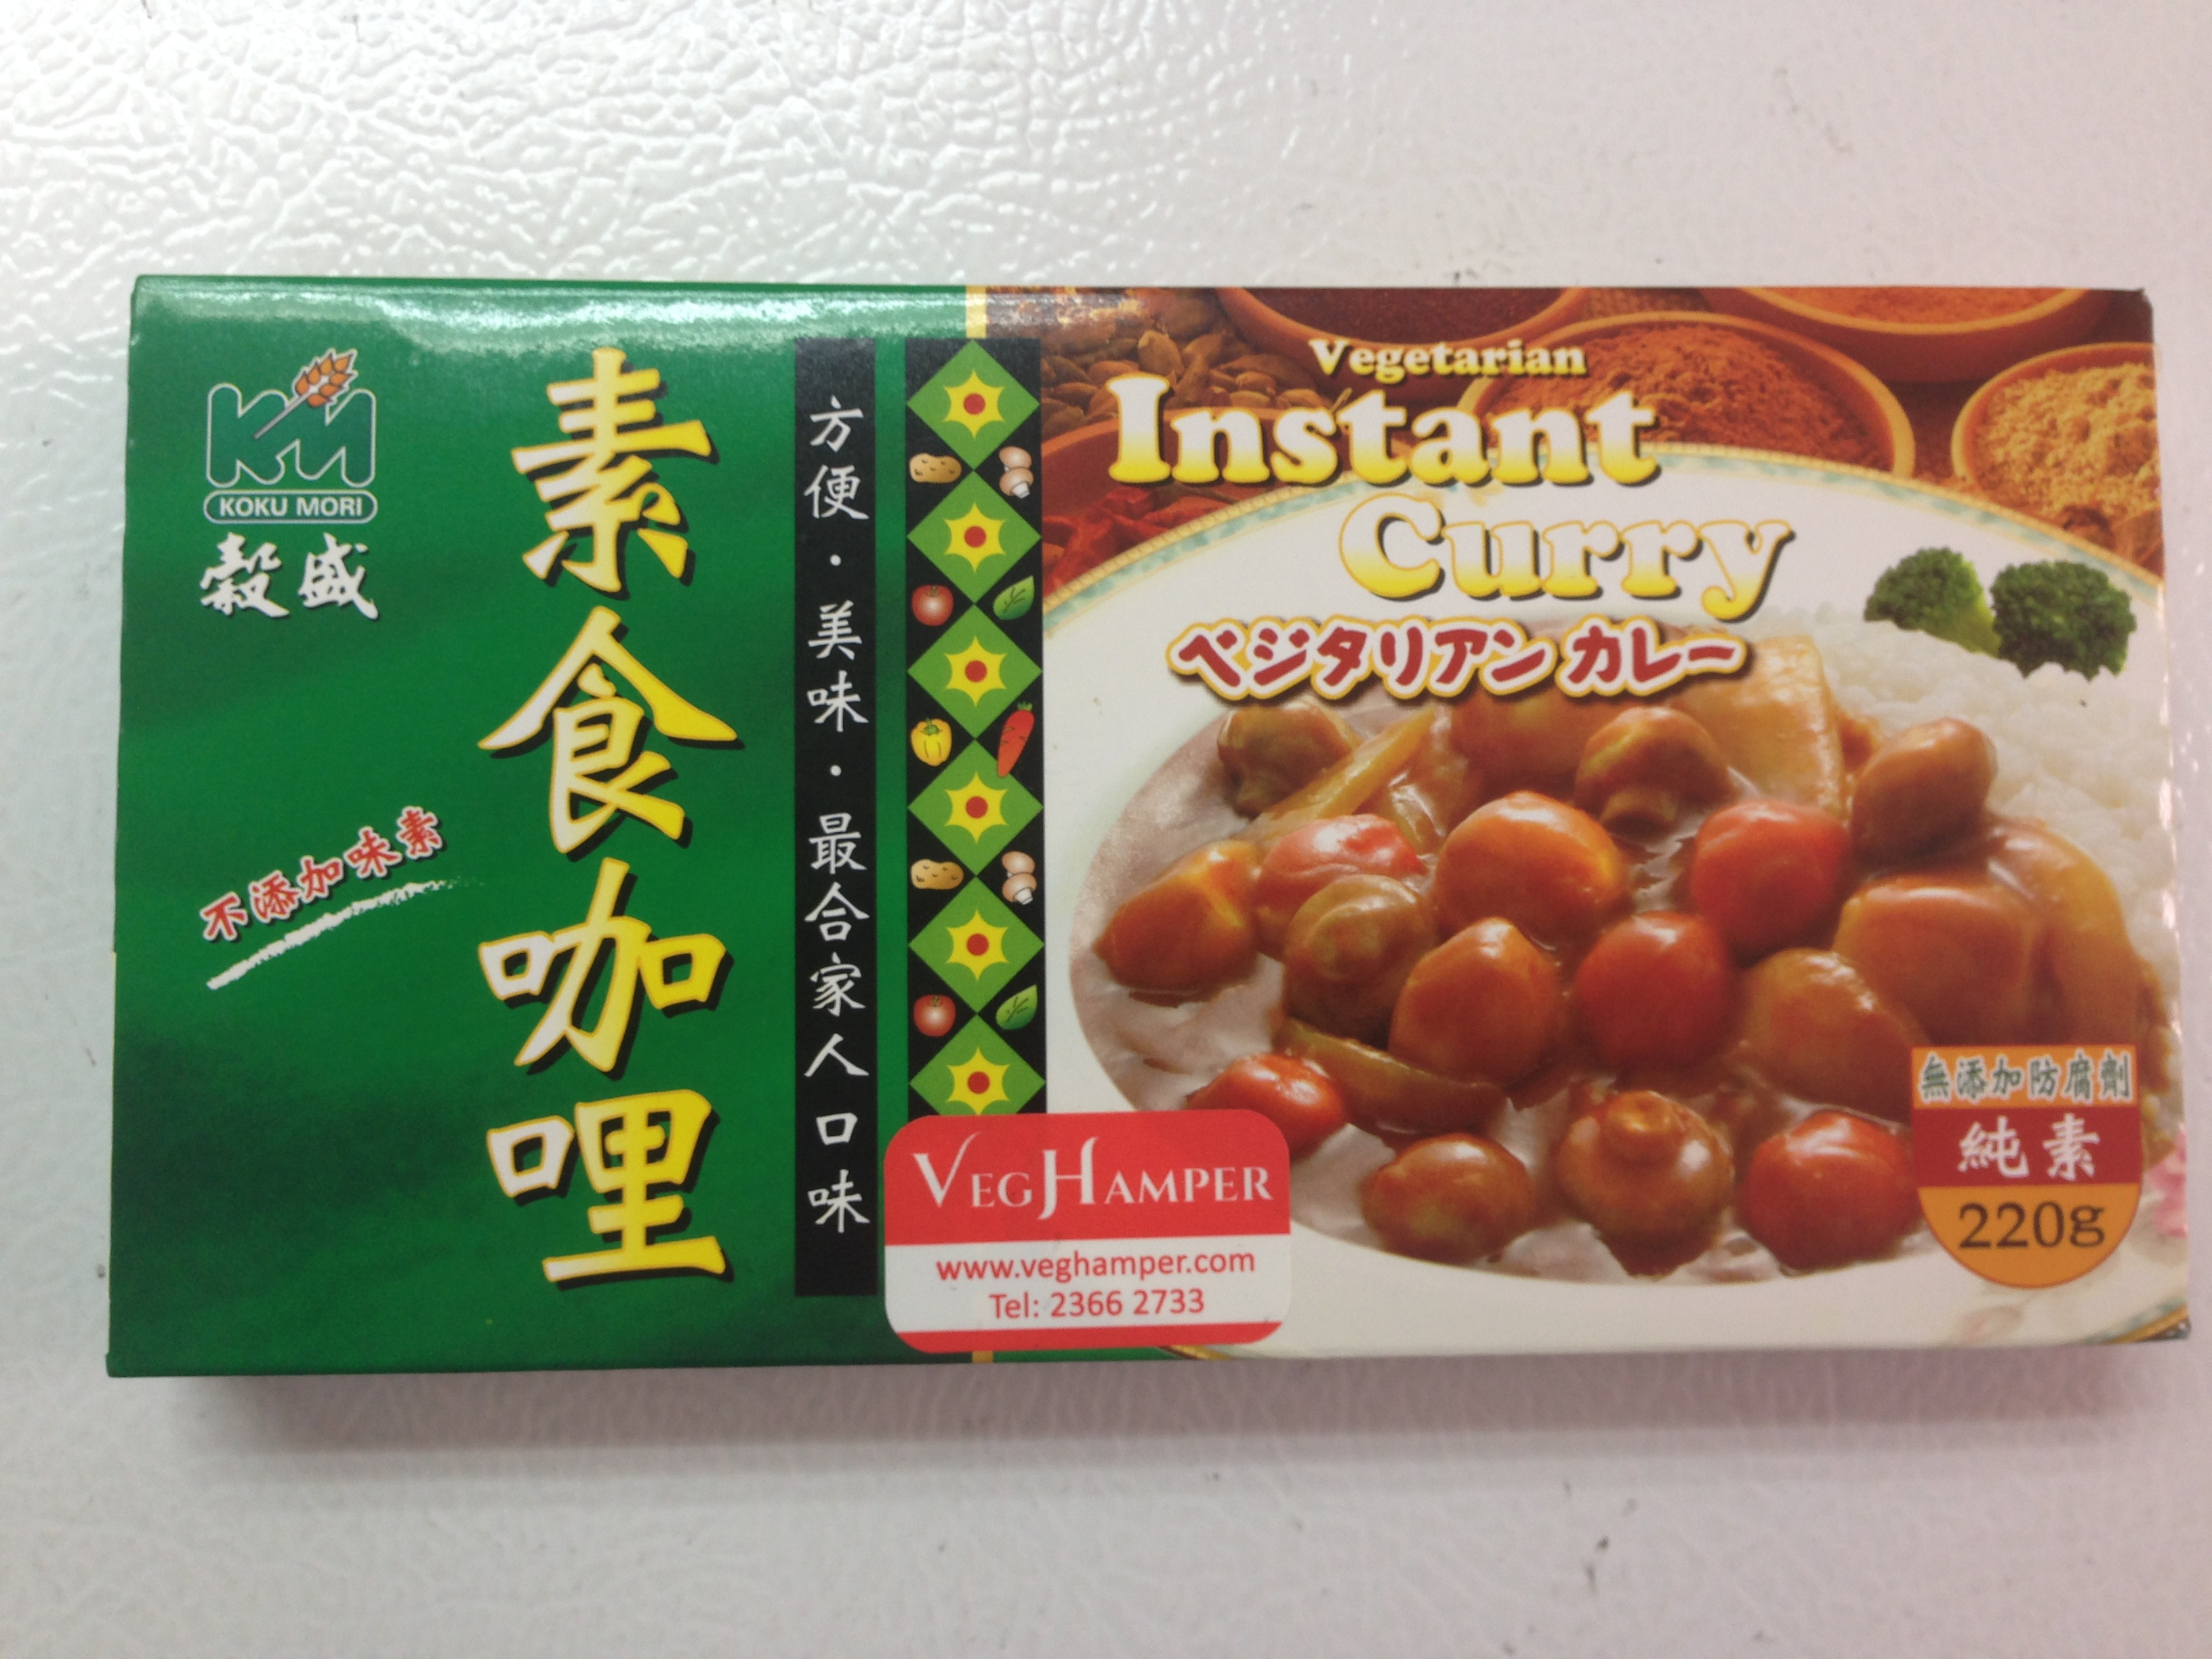 Kokumori Vegetarian Instant Curry (12 cubes, 220g/pack)(vegan)